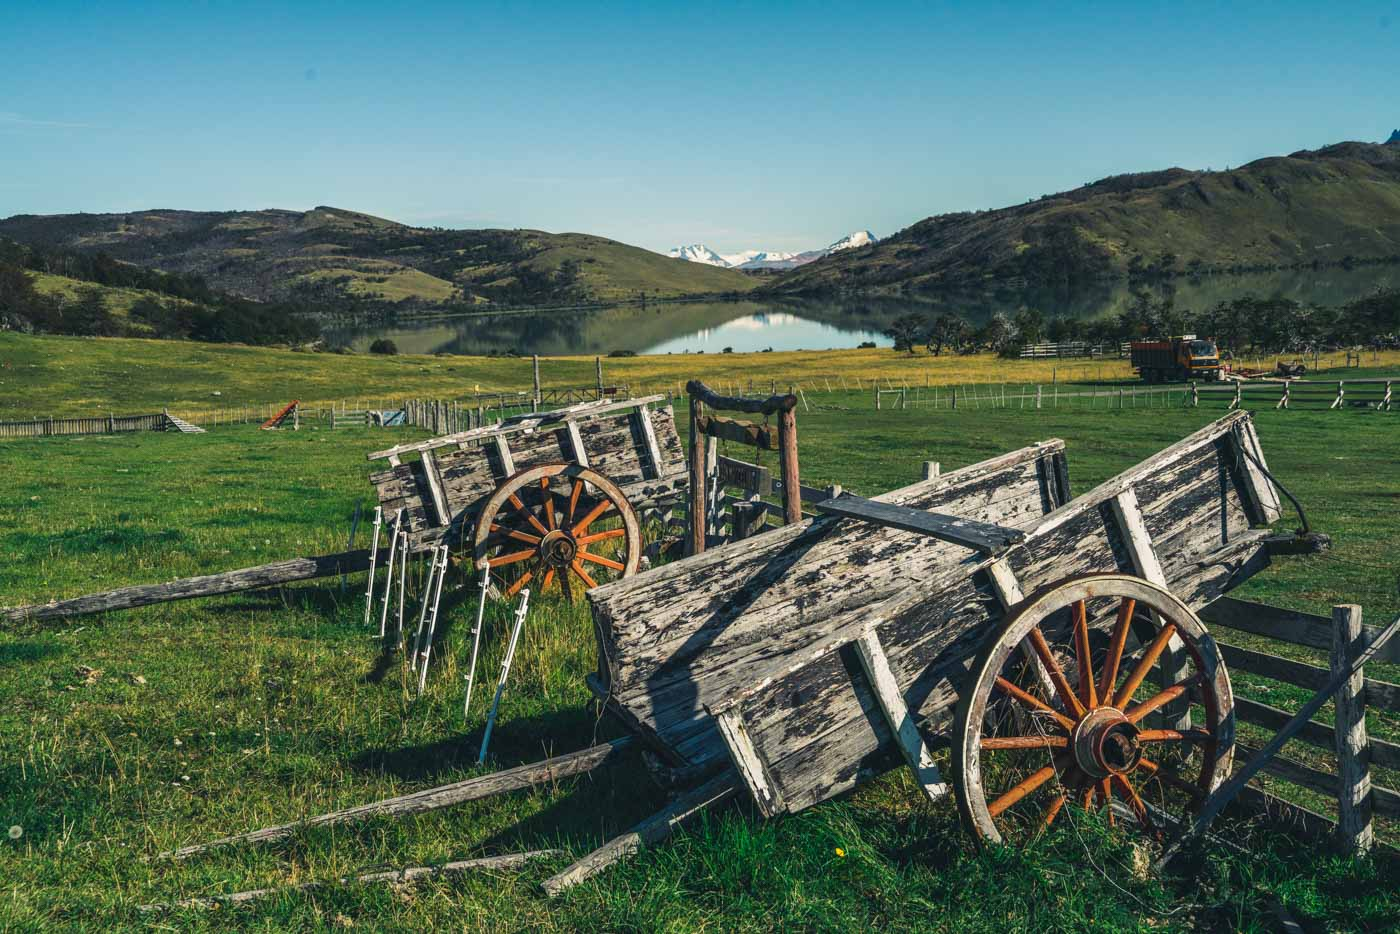 Wooden horse carriages sit unused at Estancia Lazo, Patagonia, Chile